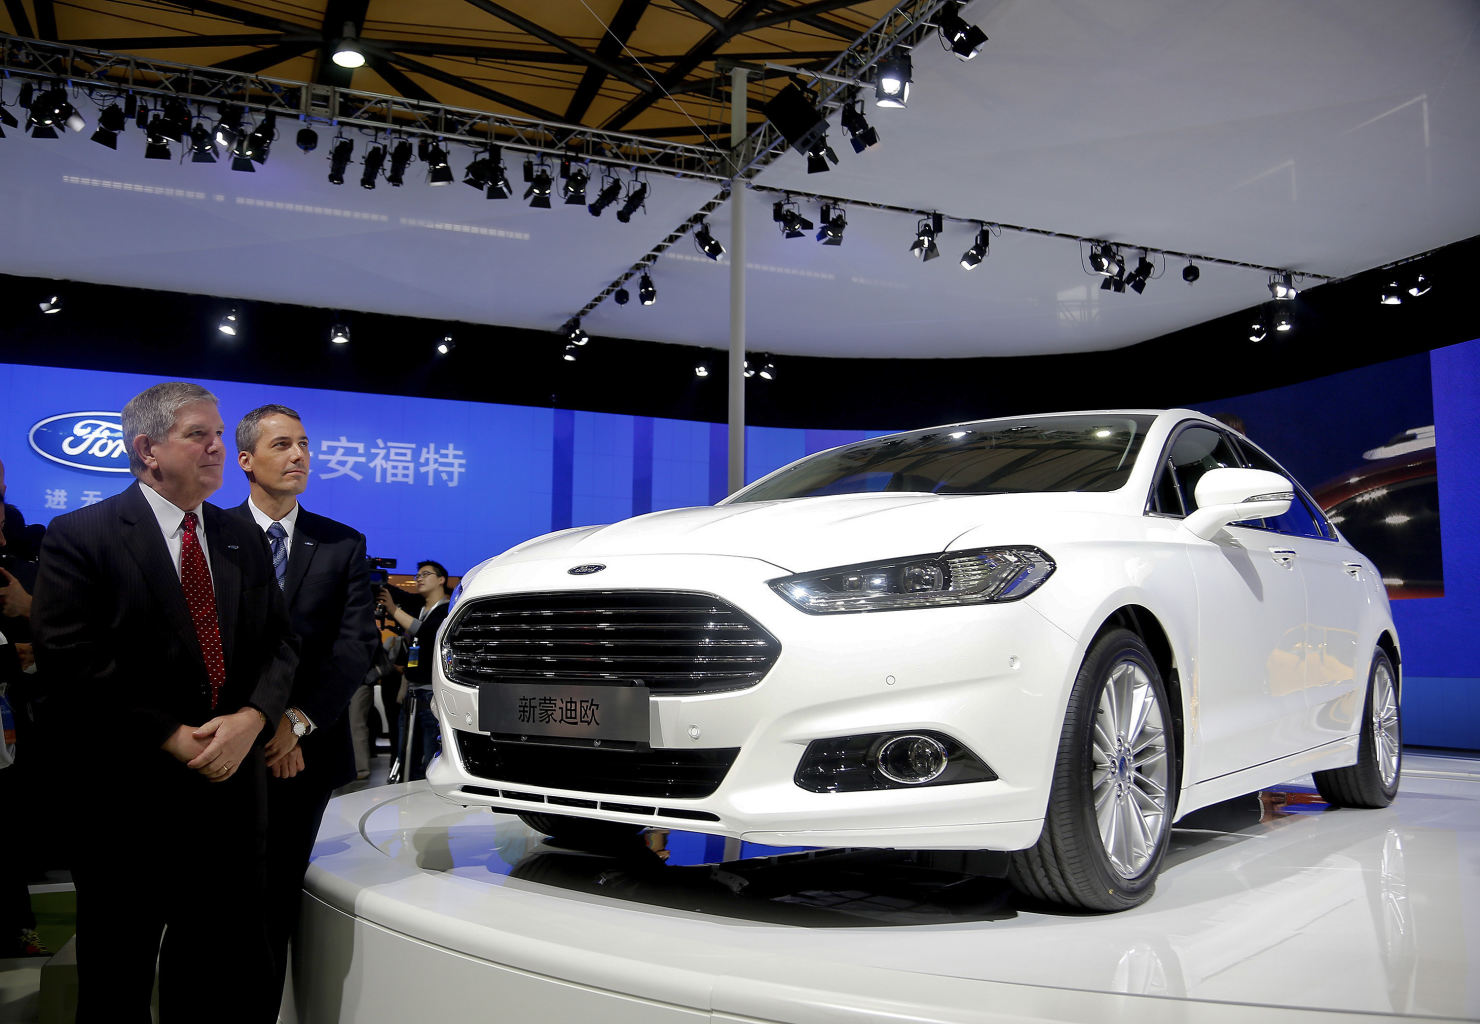 Officials from Ford Motor Co. stand near the new Ford Mondeo model